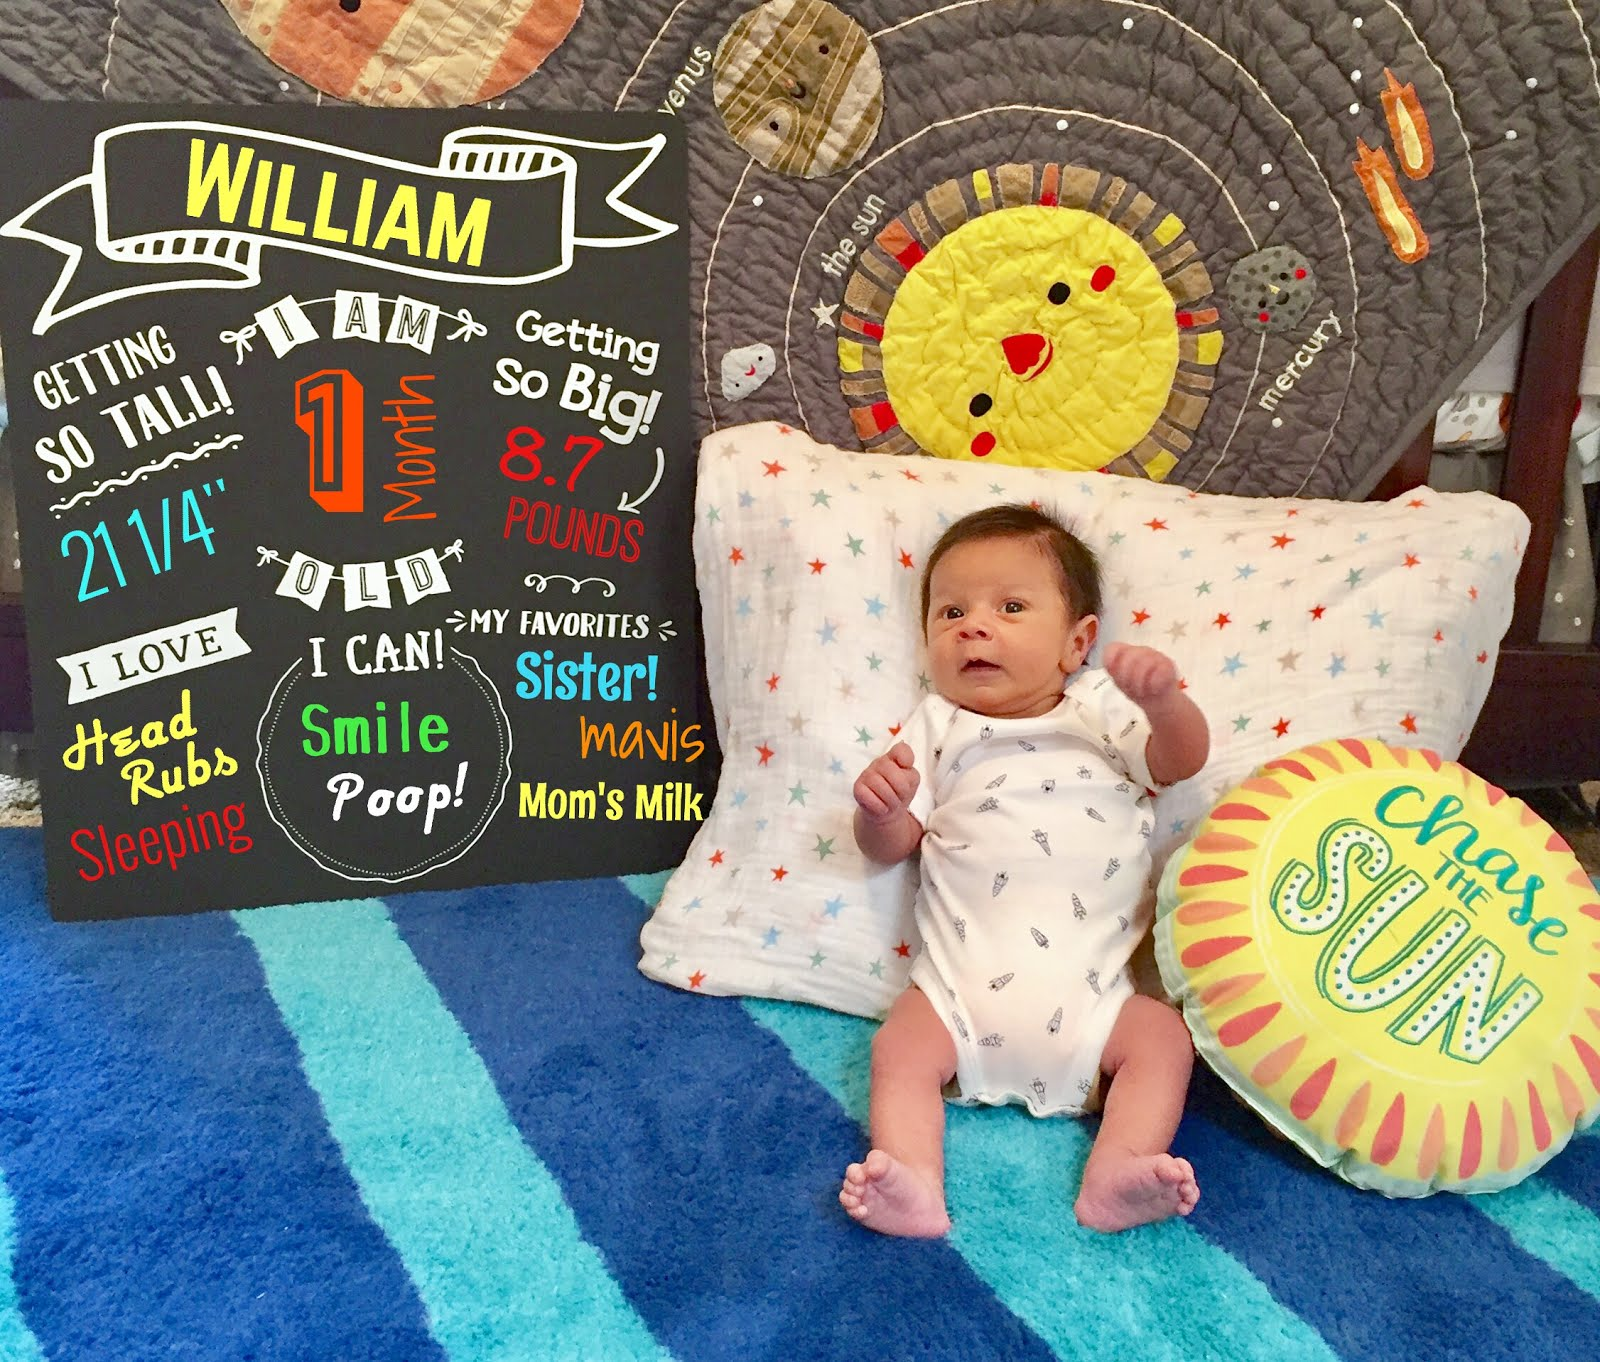 1 Month of William